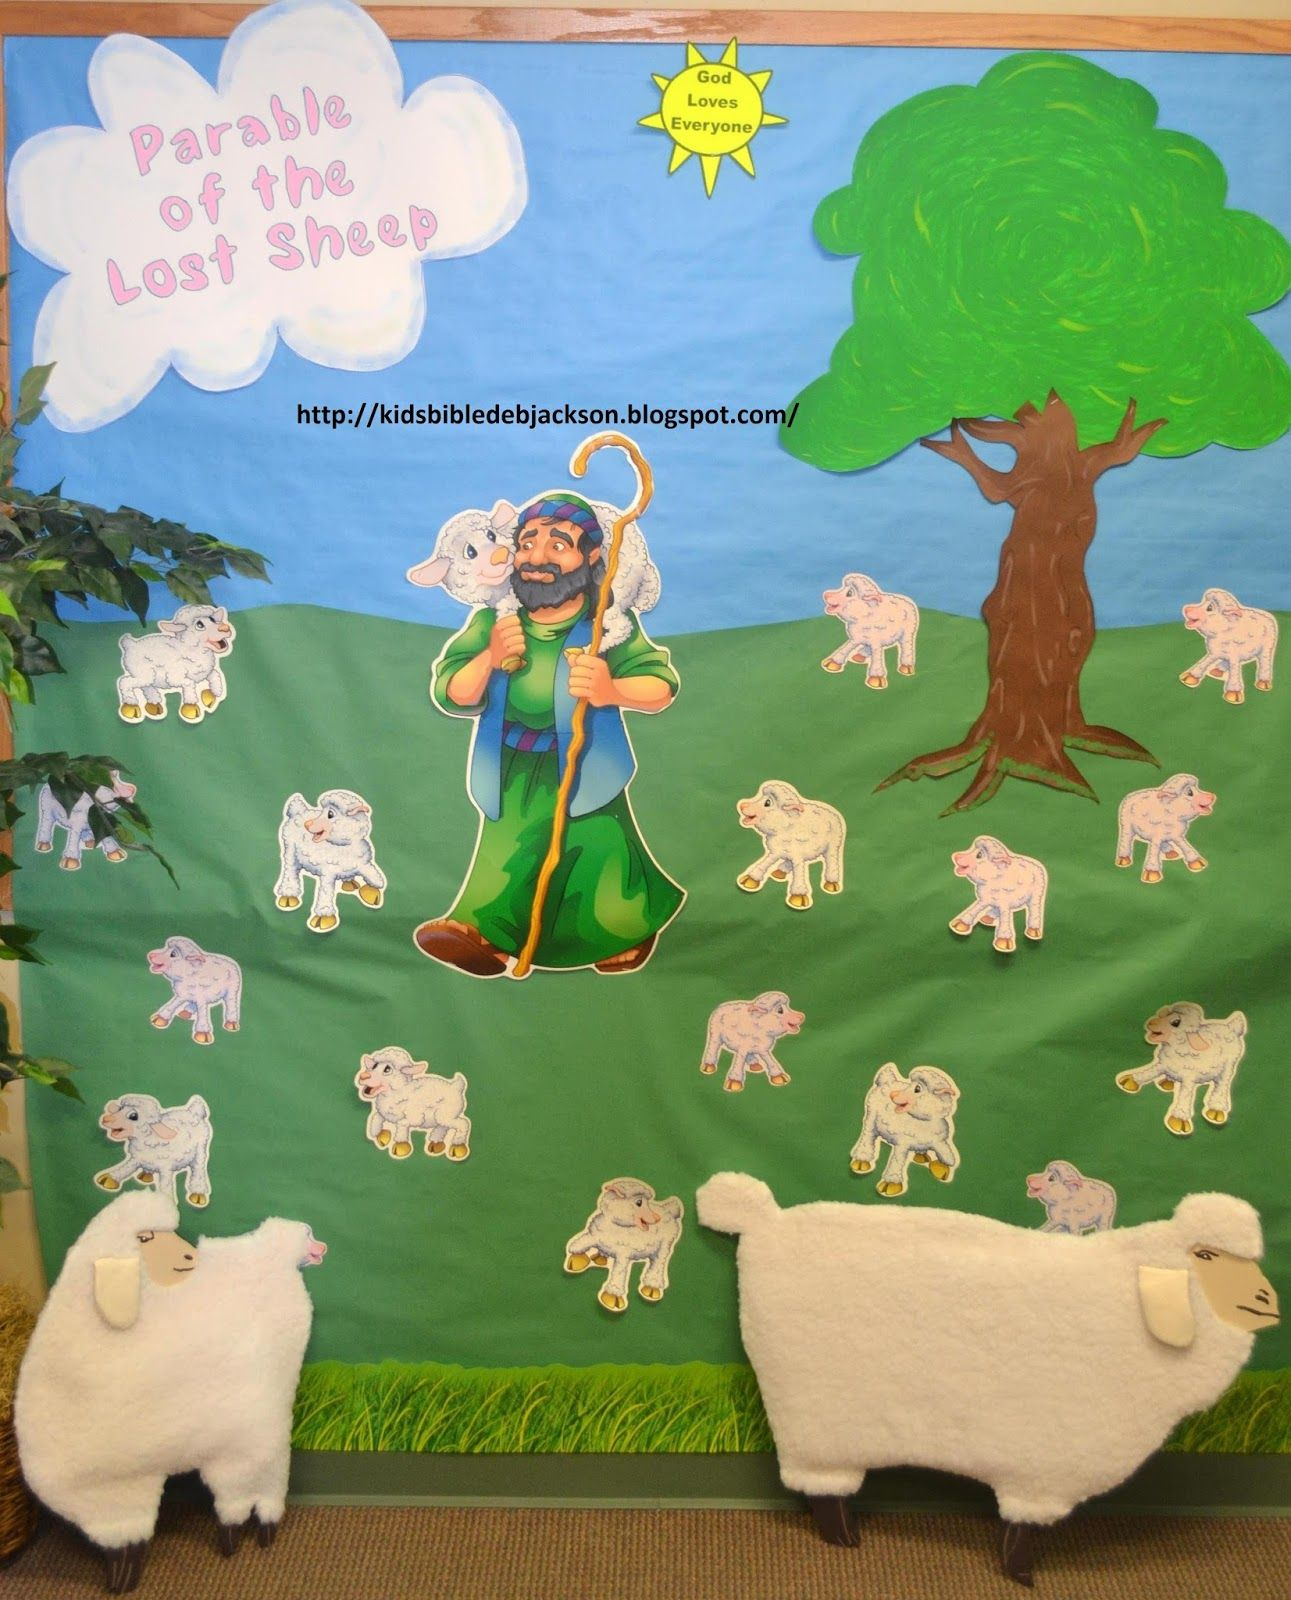 Free lutheran clipart lamb of god feeds his sheep picture freeuse stock Pinterest picture freeuse stock